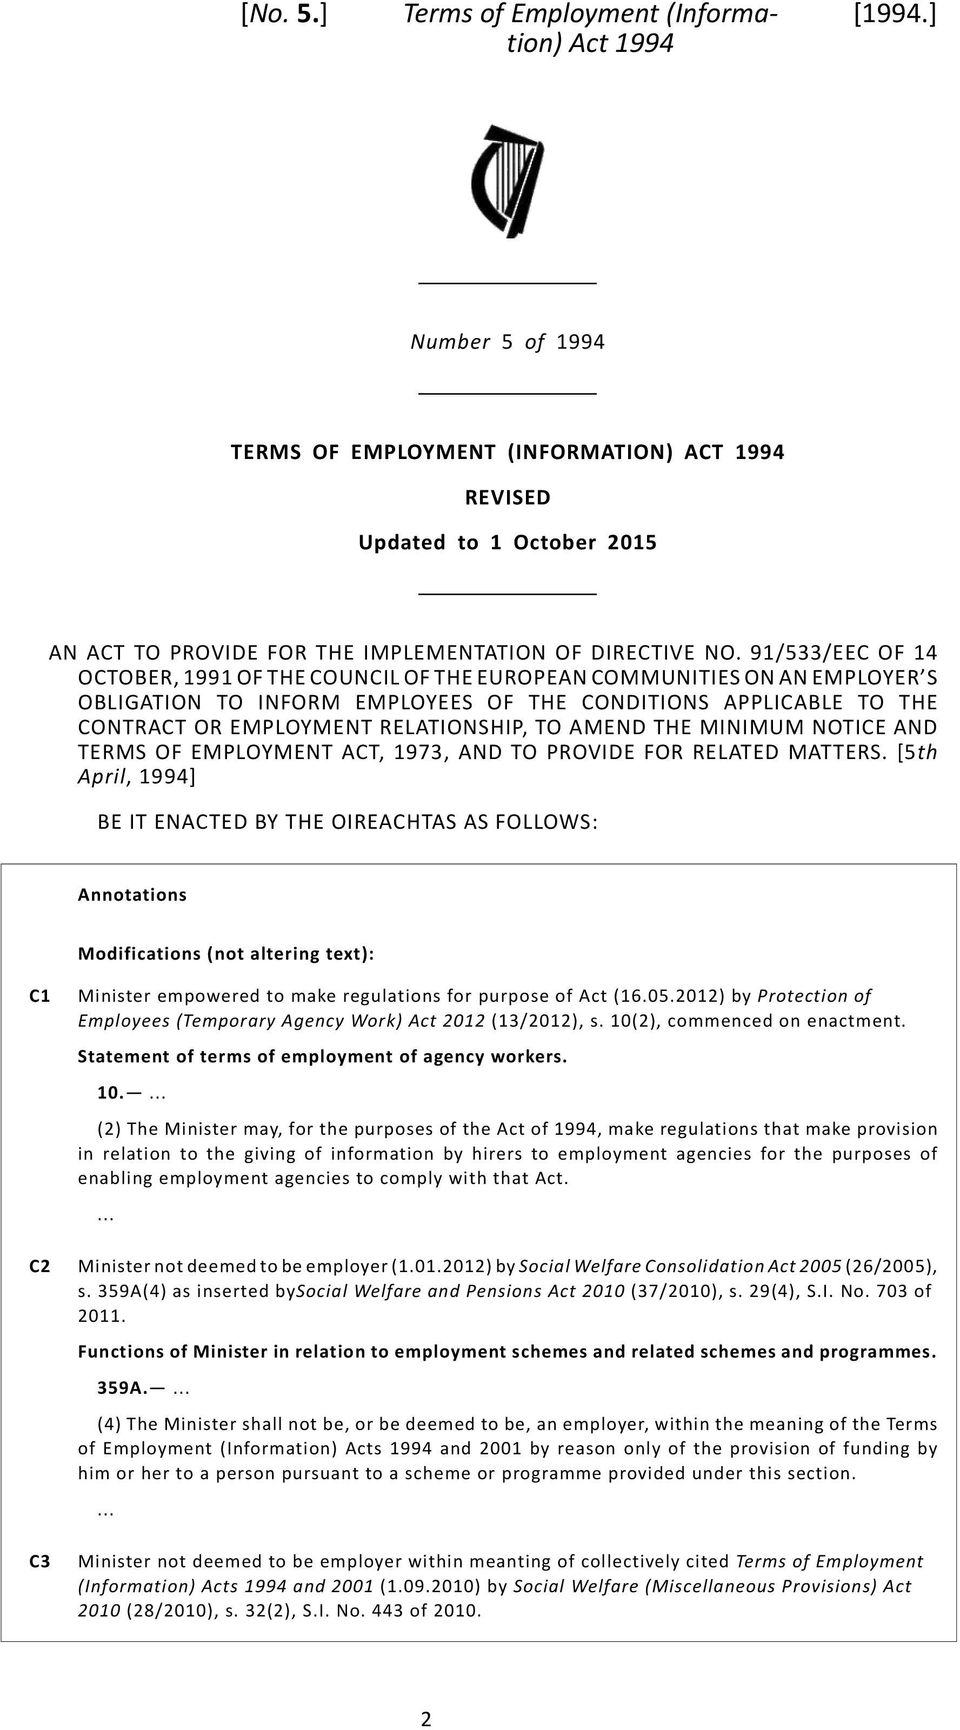 AMEND THE MINIMUM NOTICE AND TERMS OF EMPLOYMENT ACT, 1973, AND TO PROVIDE FOR RELATED MATTERS.